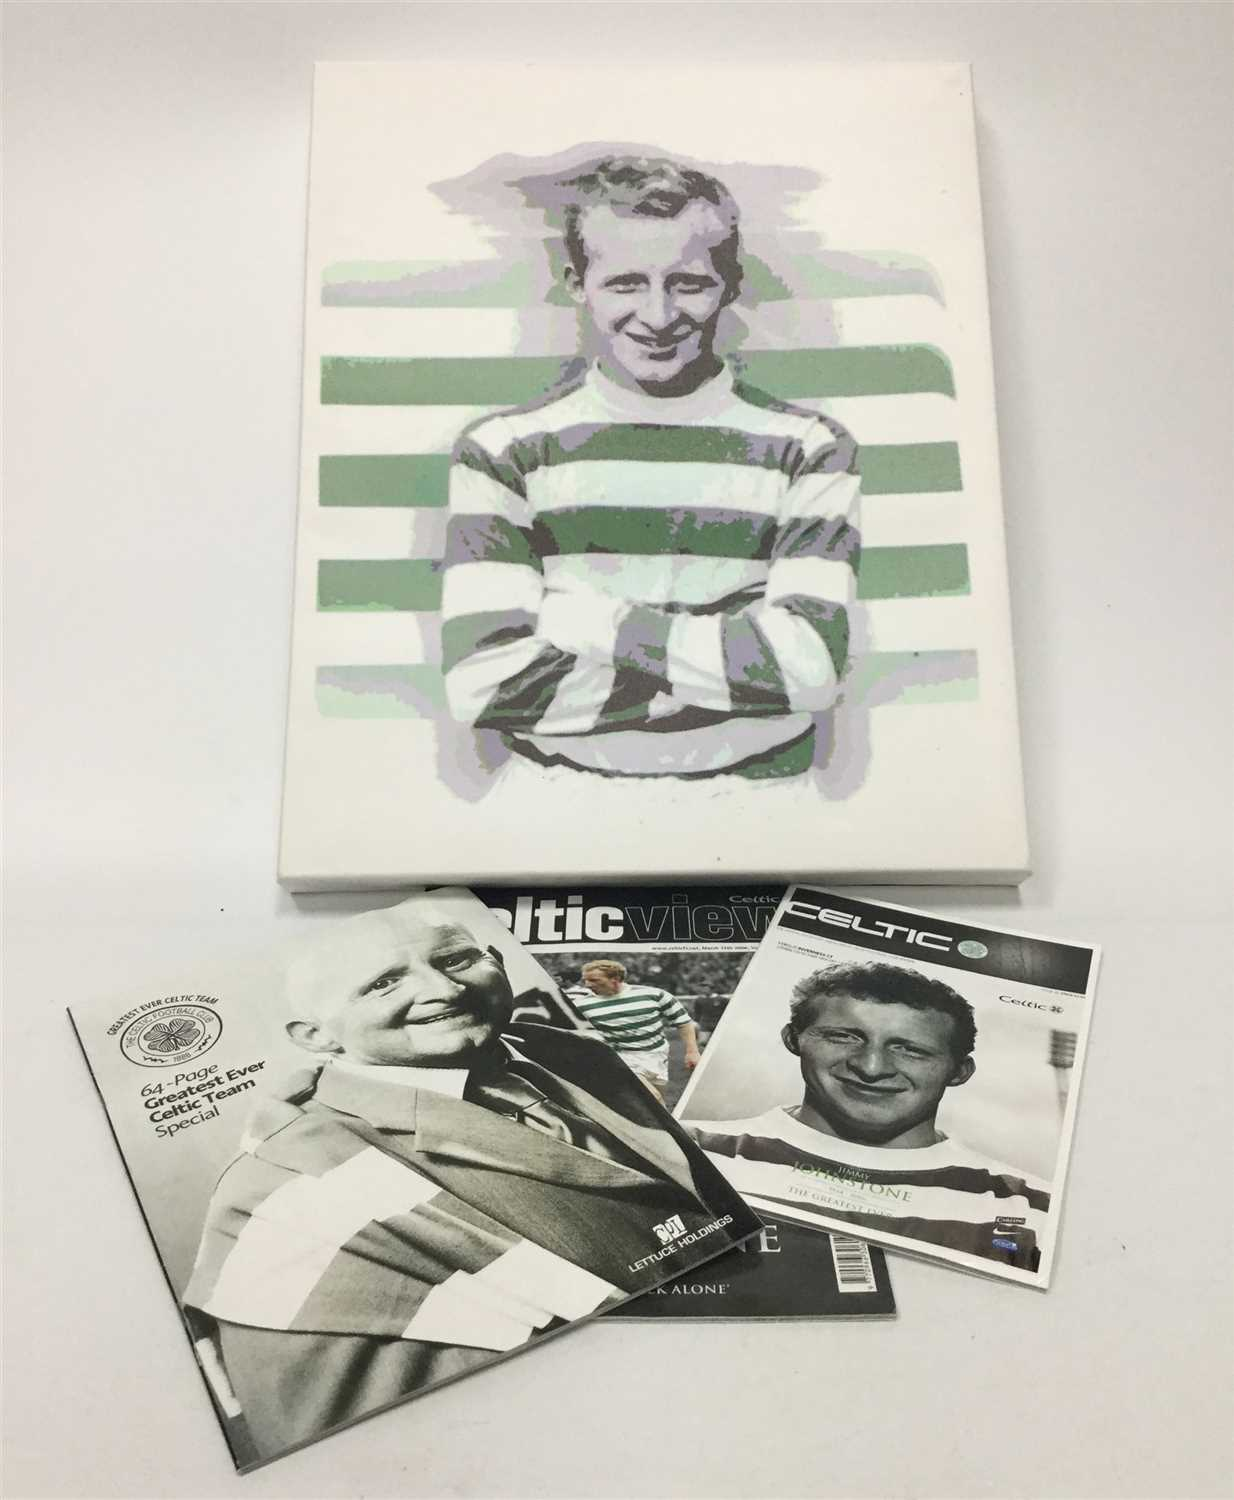 Lot 1930-A SCREENPRINT OF JIMMY JOHNSTONE AND OTHER ITEMS RELATED TO JOHNSTONE